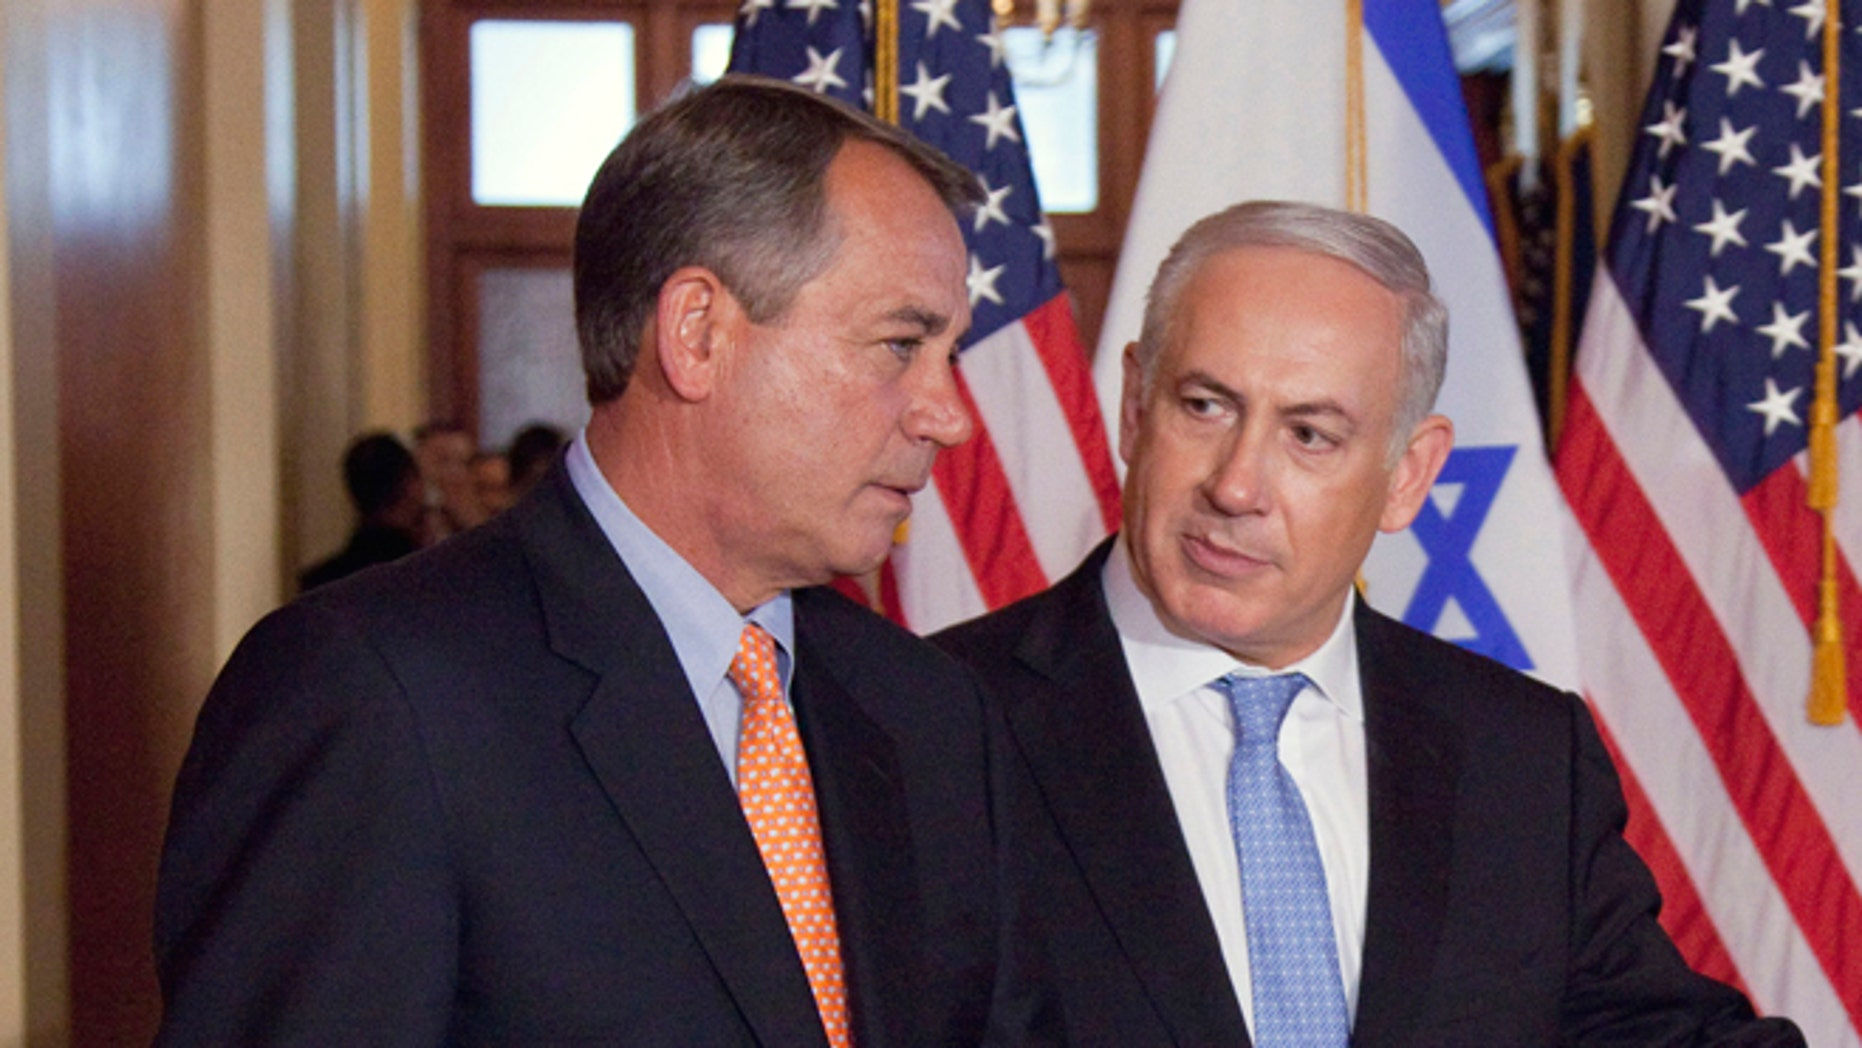 This May 24, 2011 file photo shows Israeli Prime Minister Benjamin Netanyahu with House Speaker John Boehner on Capitol Hill in Washington.